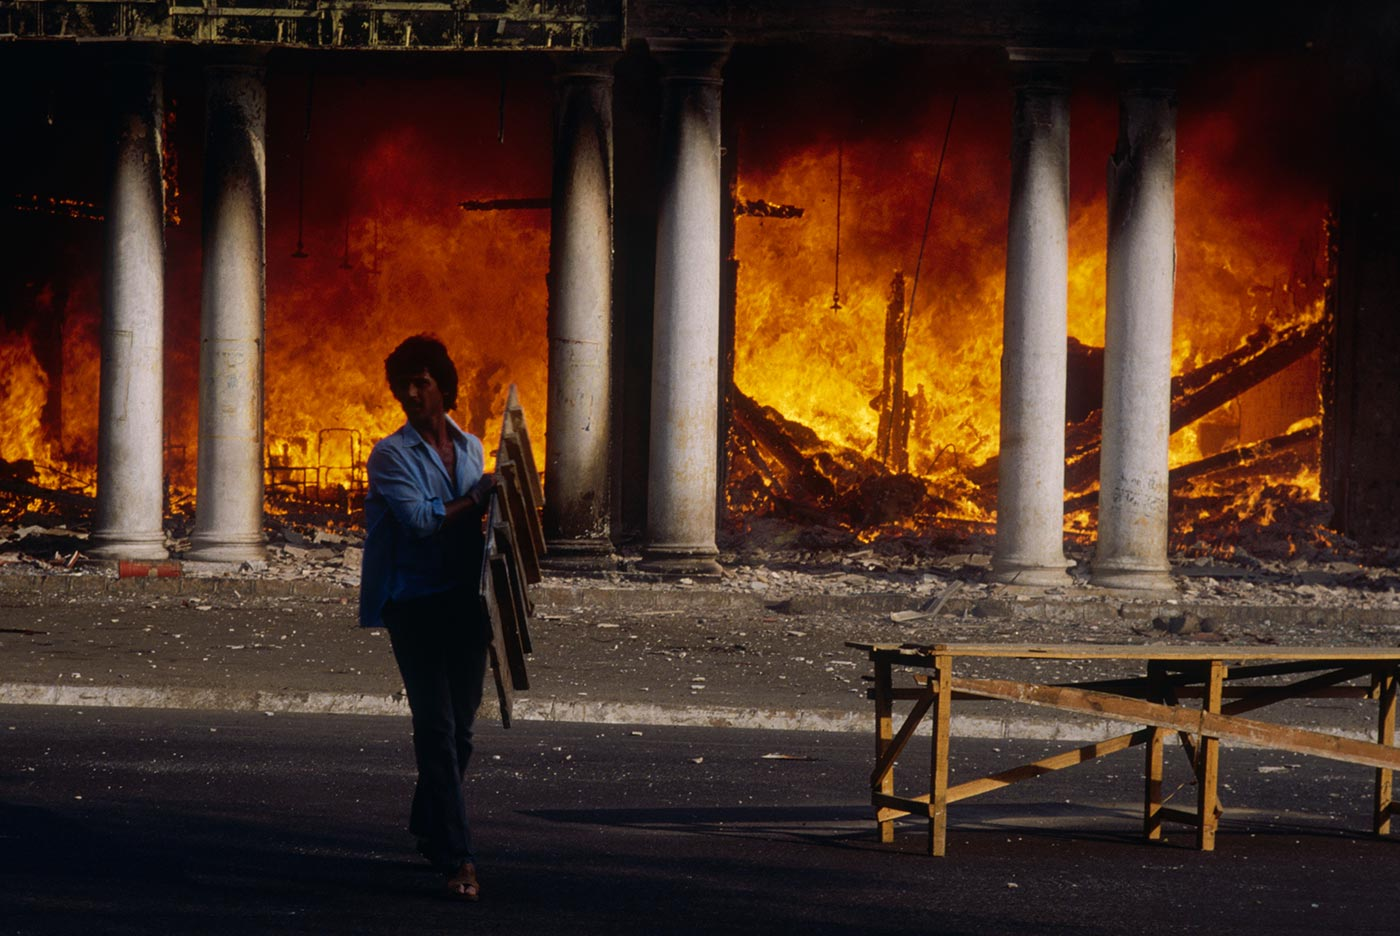 A building burns in the riots that engulfed New Delhi in the aftermath of the assassination of Indira Gandhi